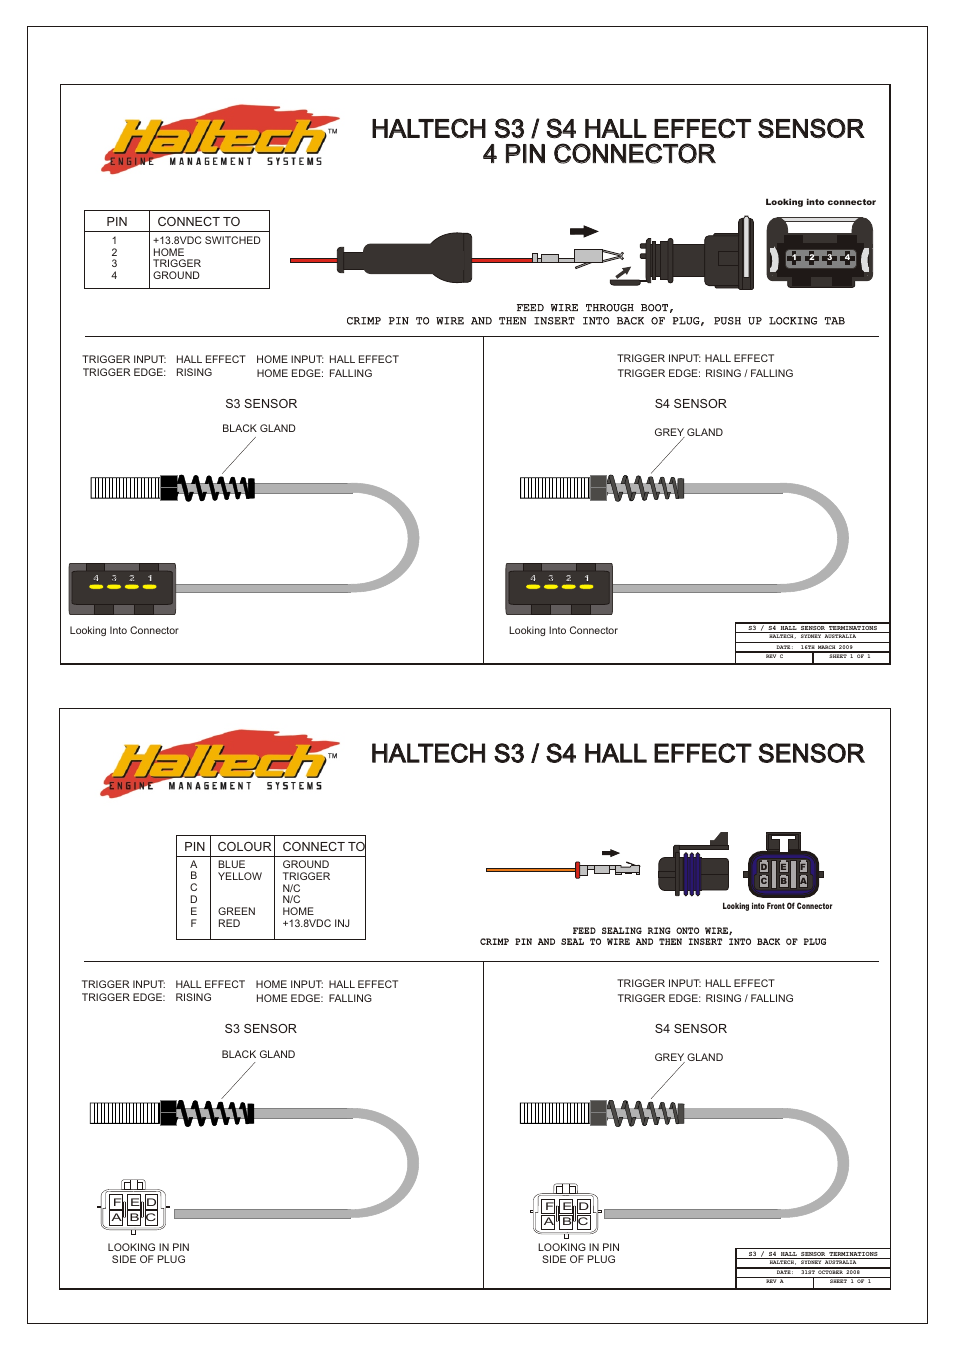 Lincoln Traps Wiring Diagram | Wiring Liry on lincoln front suspension, lincoln heater core replacement, lincoln ls relay diagram, lincoln continental horn schematics and diagram, lincoln starting problems, lincoln parts diagrams, lincoln ls wire harness diagram, lincoln brakes, 2000 lincoln ls diagrams, lincoln transmission diagrams, 92 lincoln air suspension diagrams,